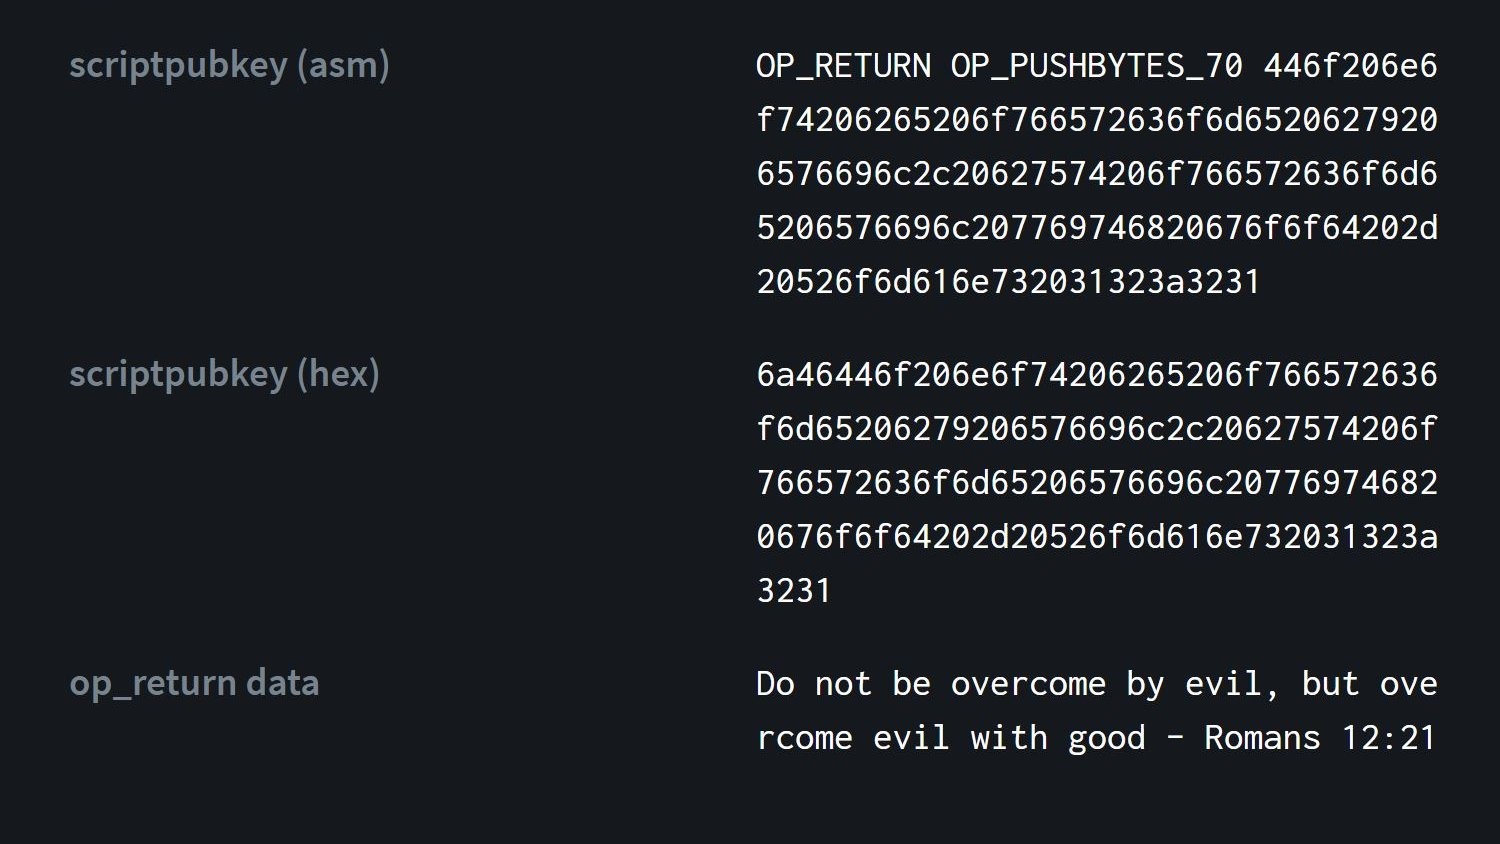 Biblical reference in Bitcoin block 666,666. Source: Bitcoinhackers.org